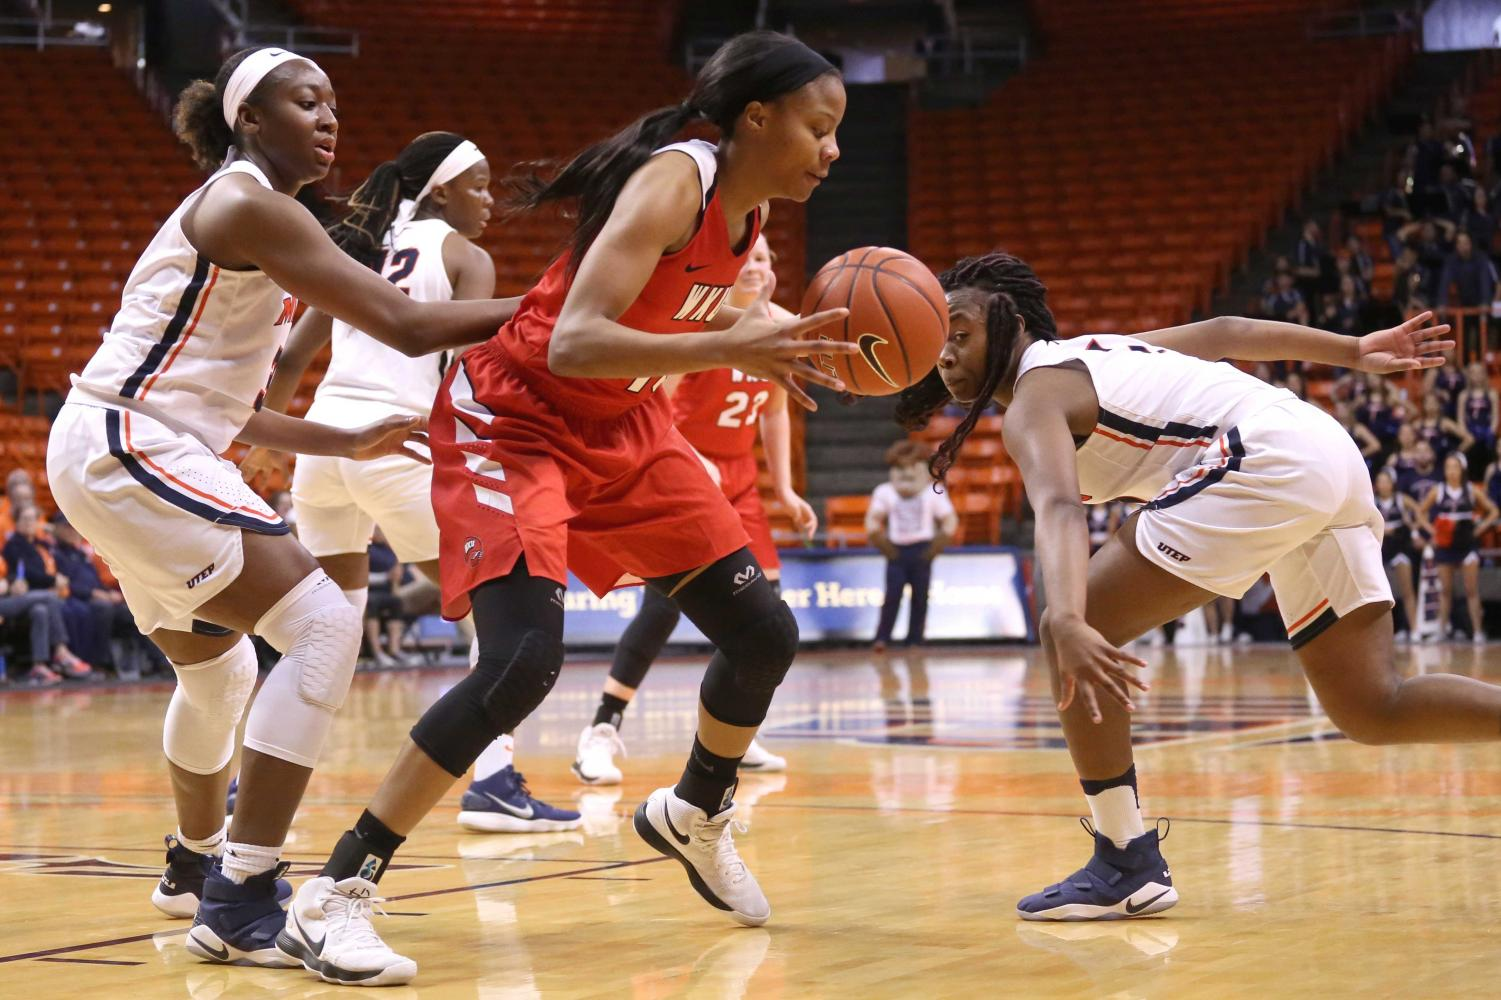 Sophomore+guard+Roeshanda+Patterson+attempts+to+steal+the+ball+from+WKU+on+Saturday%2C+March+3+at+the+Don+Haskins+Center.